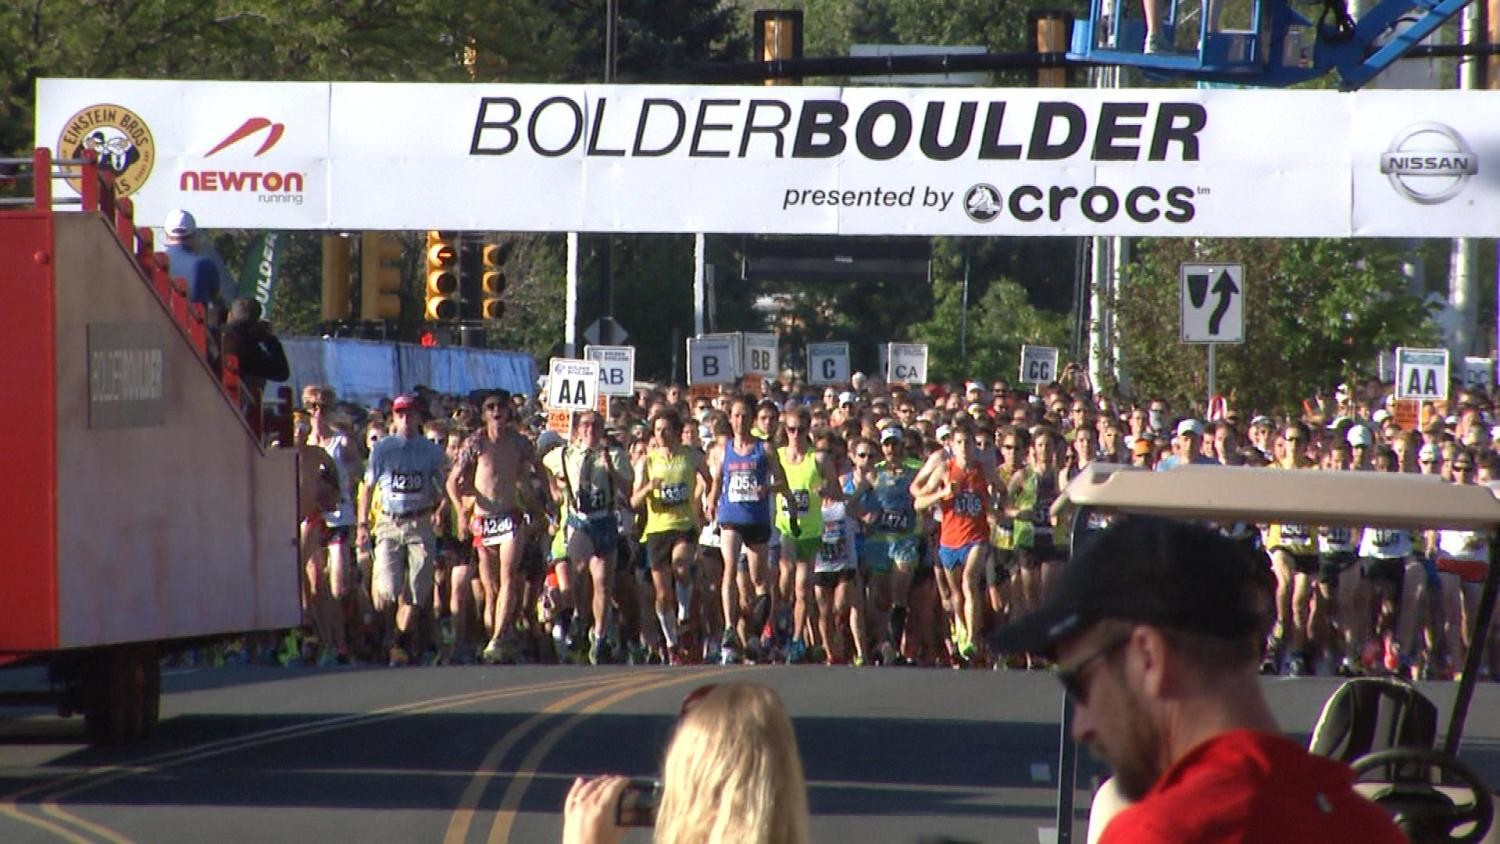 Bolder Boulder 10k has been moved from Memorial Day to Labor Day